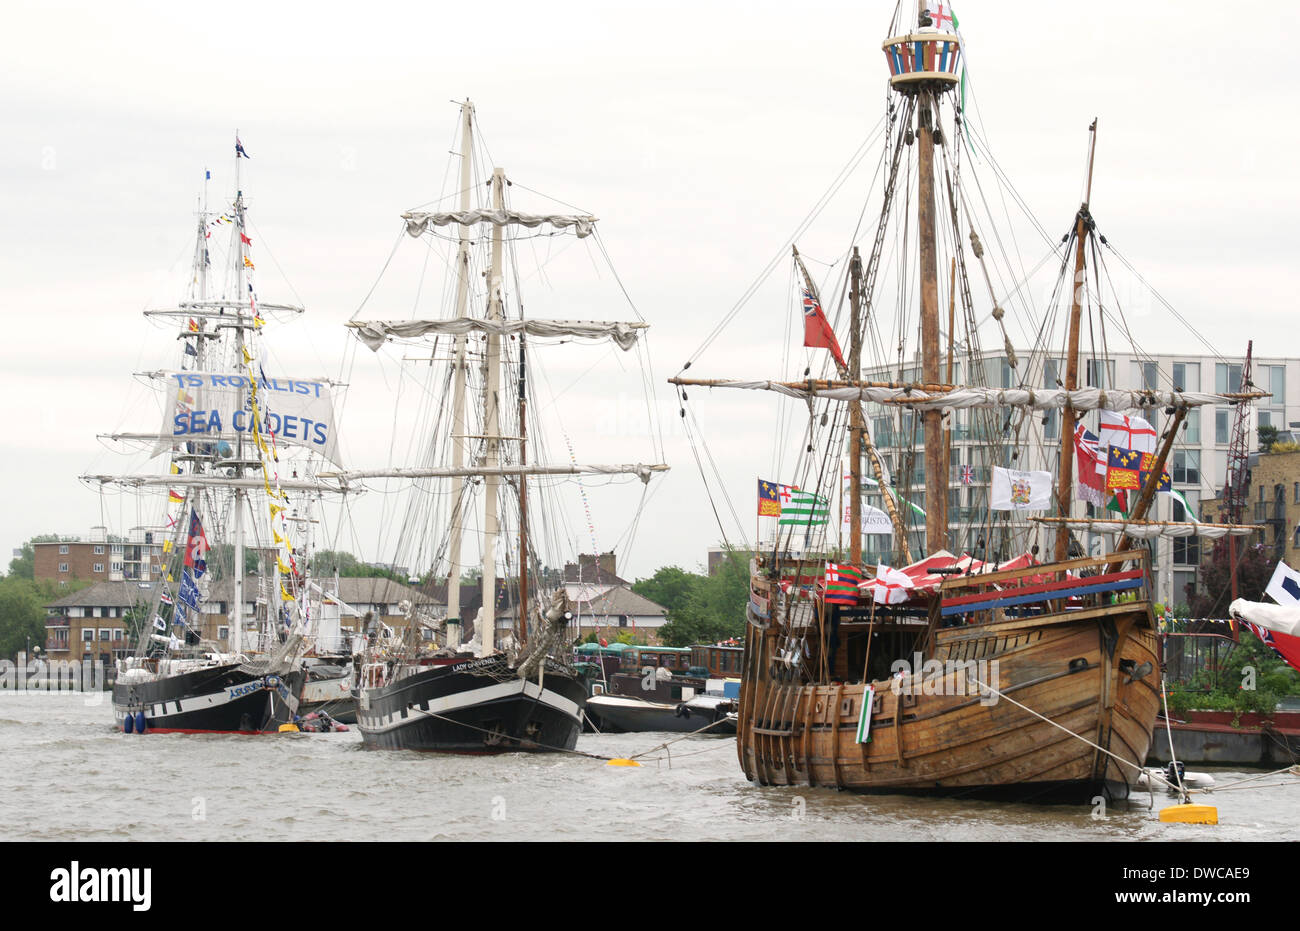 1996 replica of MATTHEW that sailed 500 years ago to the coast of Newfoundland in the Parade of Sail on the Thames for the Queen - Stock Image